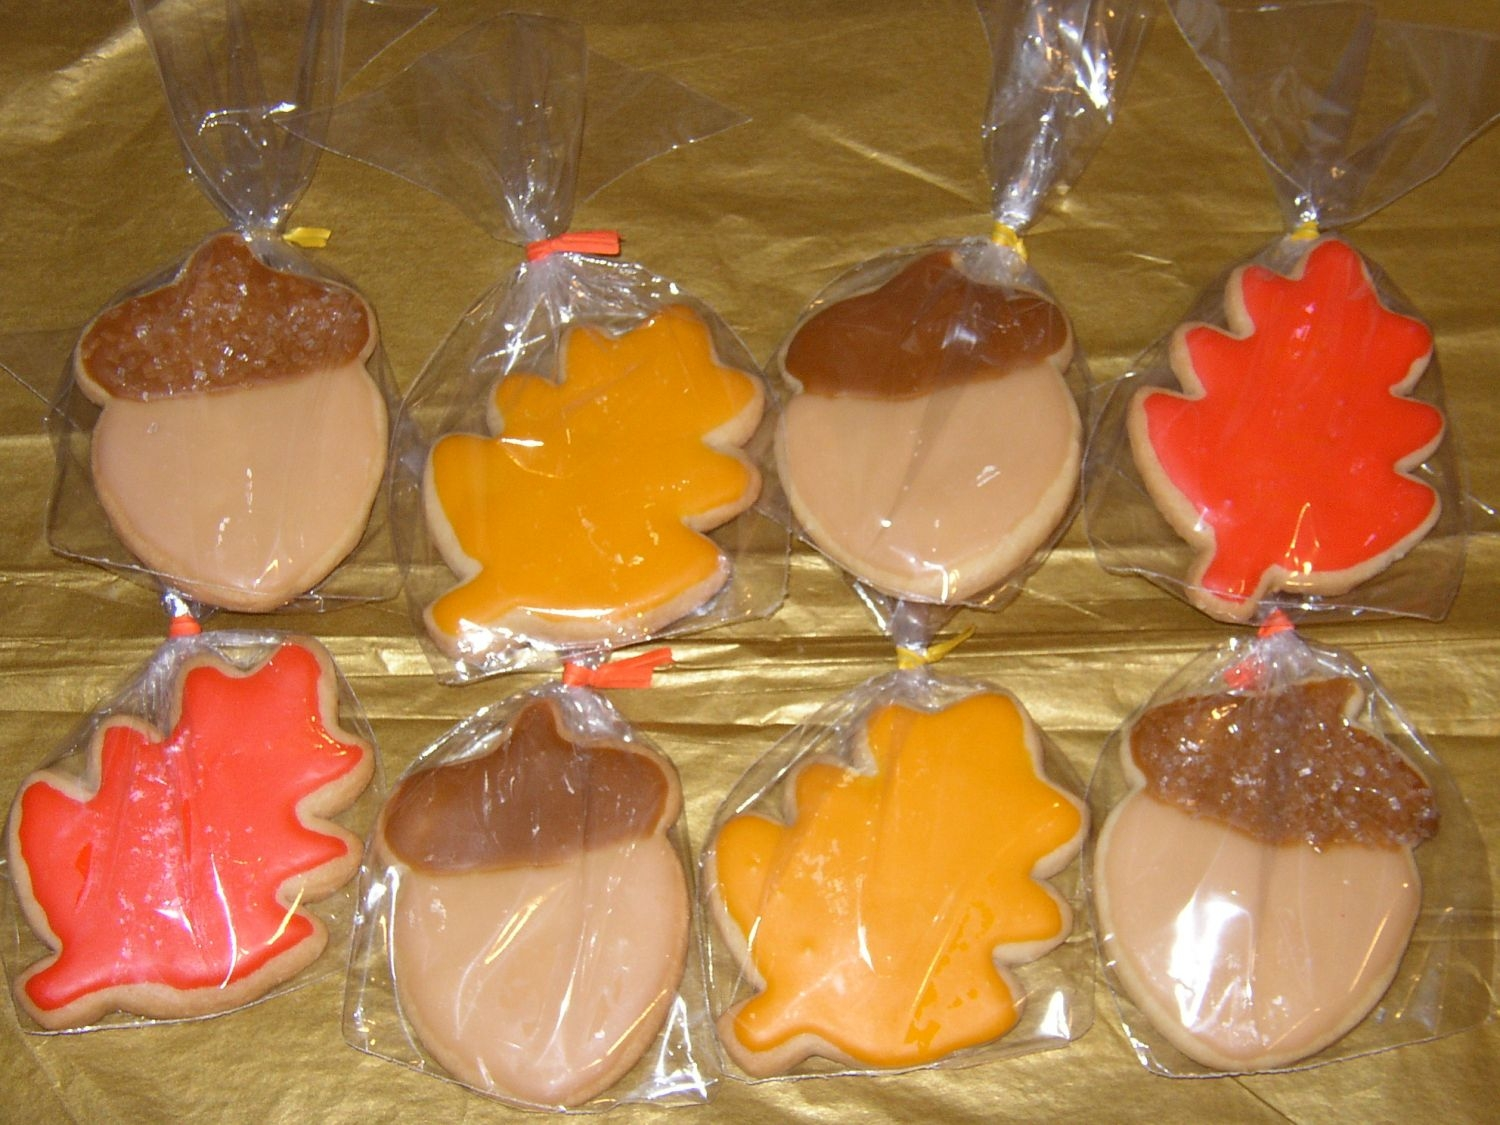 Fall/thanksgiving Cookies  These were some samples I made to show what I am doing for Thanksgiving. I am not sure yet how I feel about the acorn. One was made with...